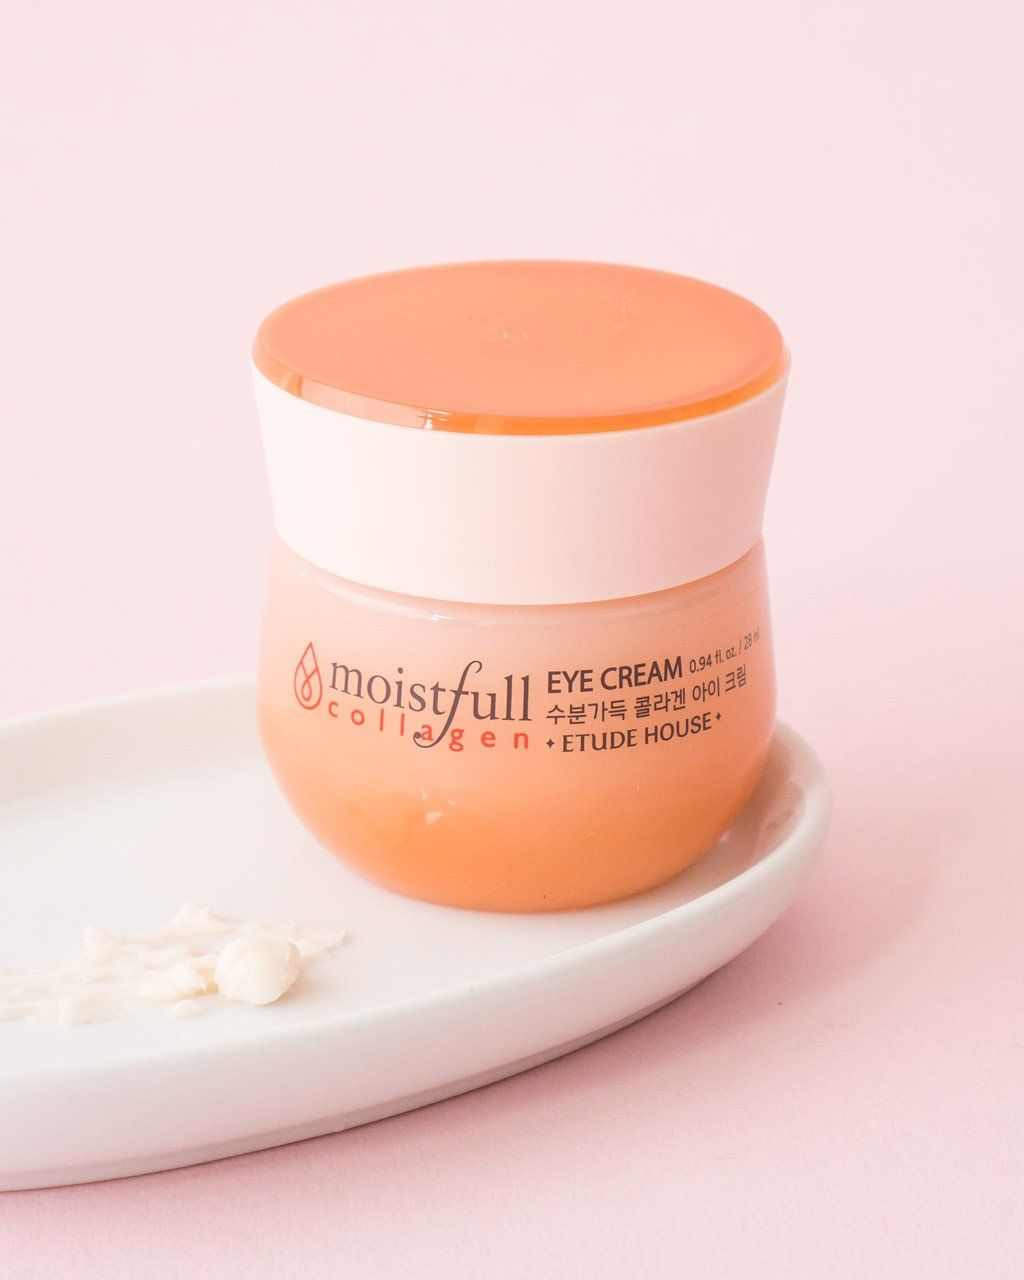 Etude House Moistfull Collagen Eye Cream Collagen Eye Cream Moistfull Collagen Etude House Moistfull Collagen